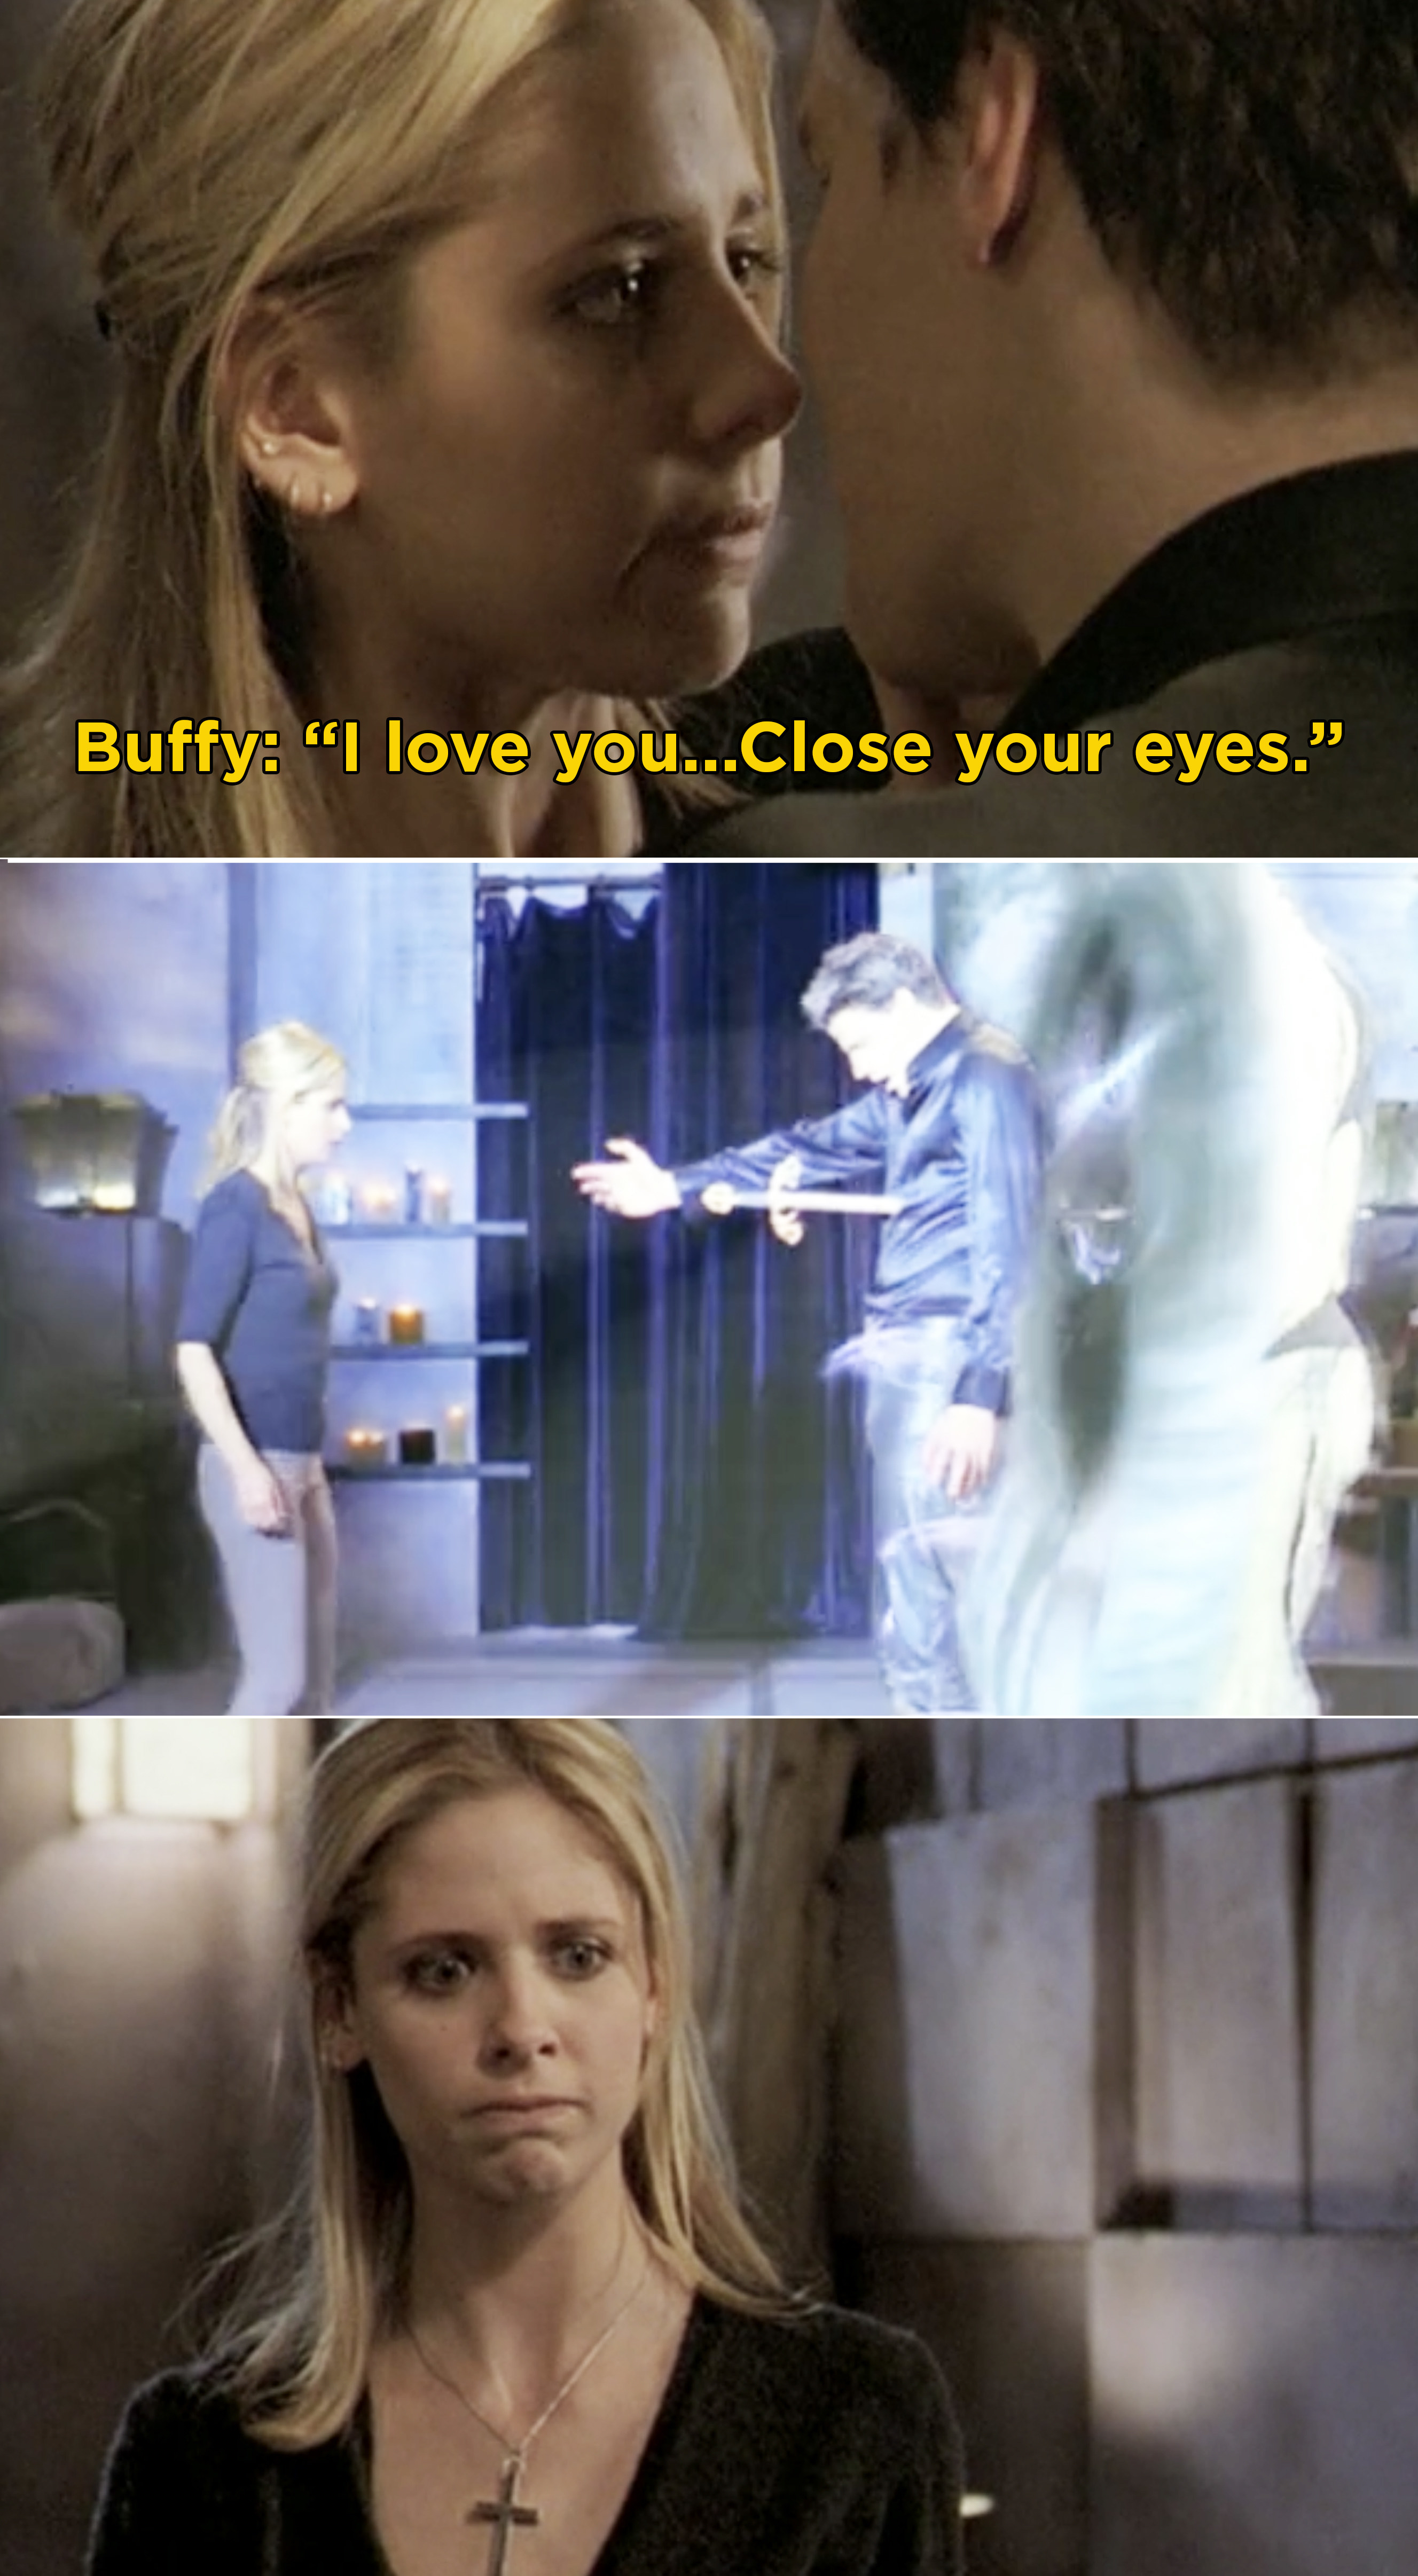 Buffy telling Angel she loves him and to close his eyes before stabbing him and sending him through a portal